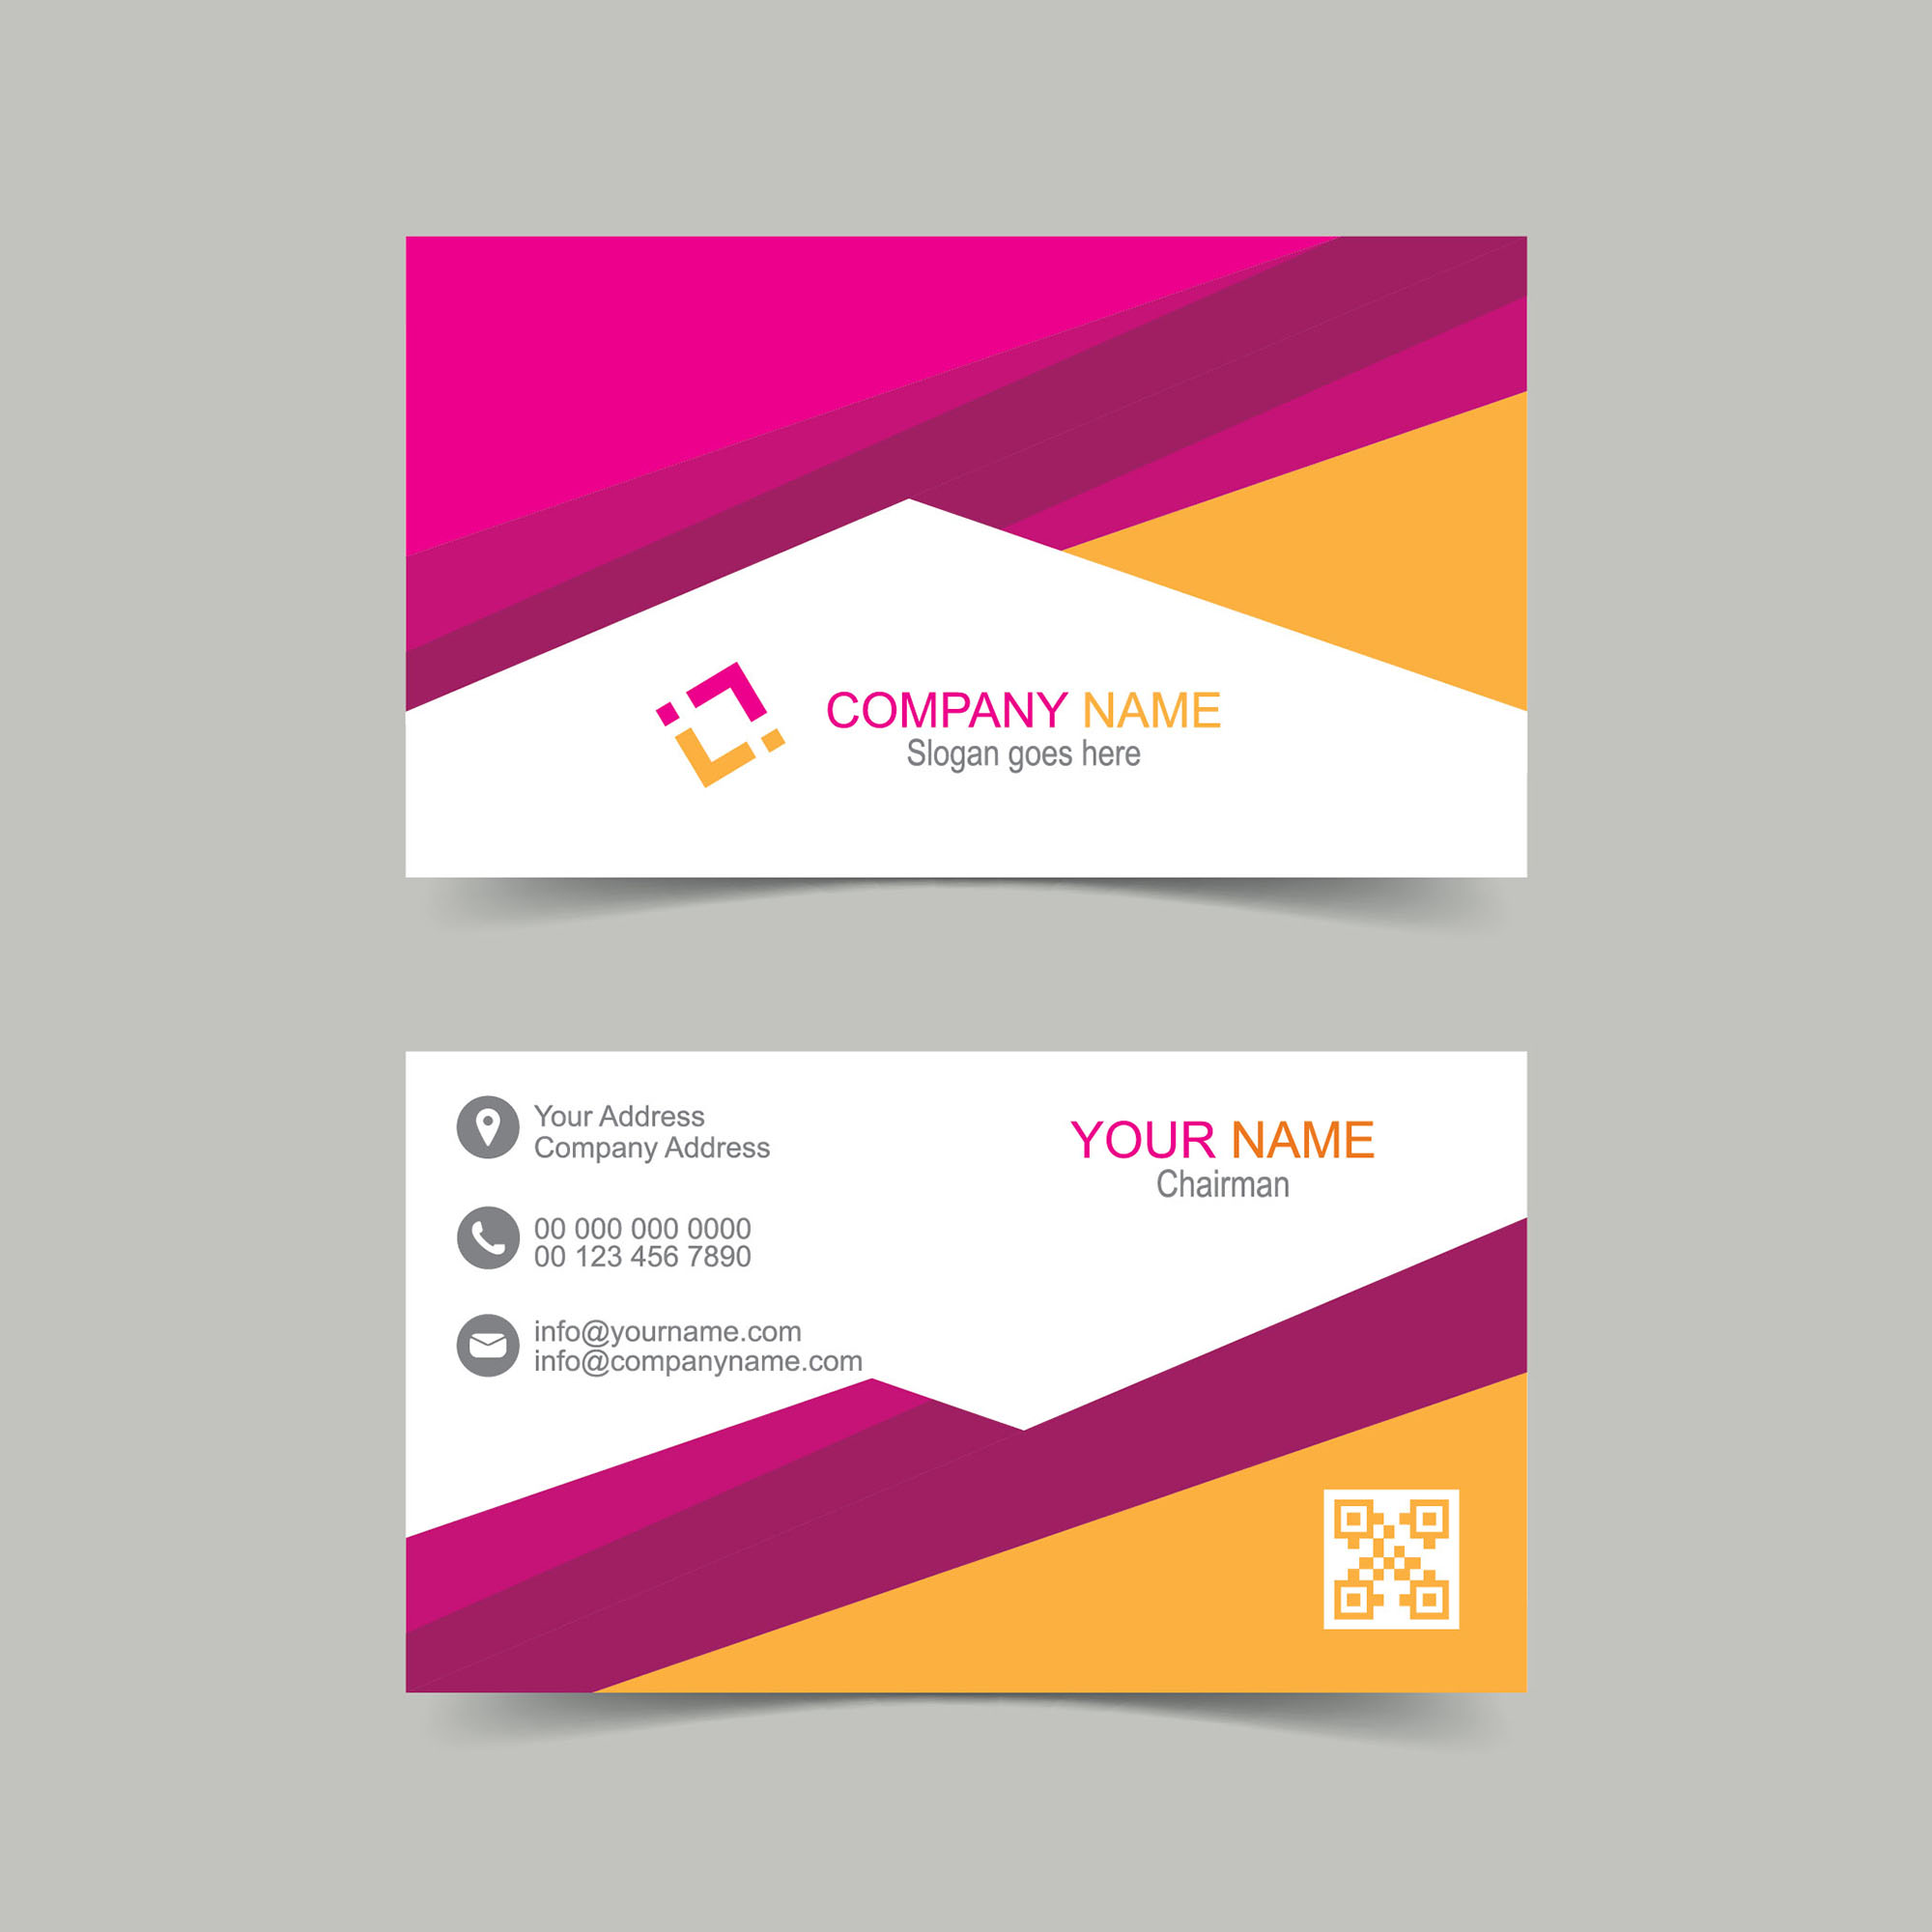 Vector business card design free download wisxi business card business cards business card design business card template design templates reheart Gallery